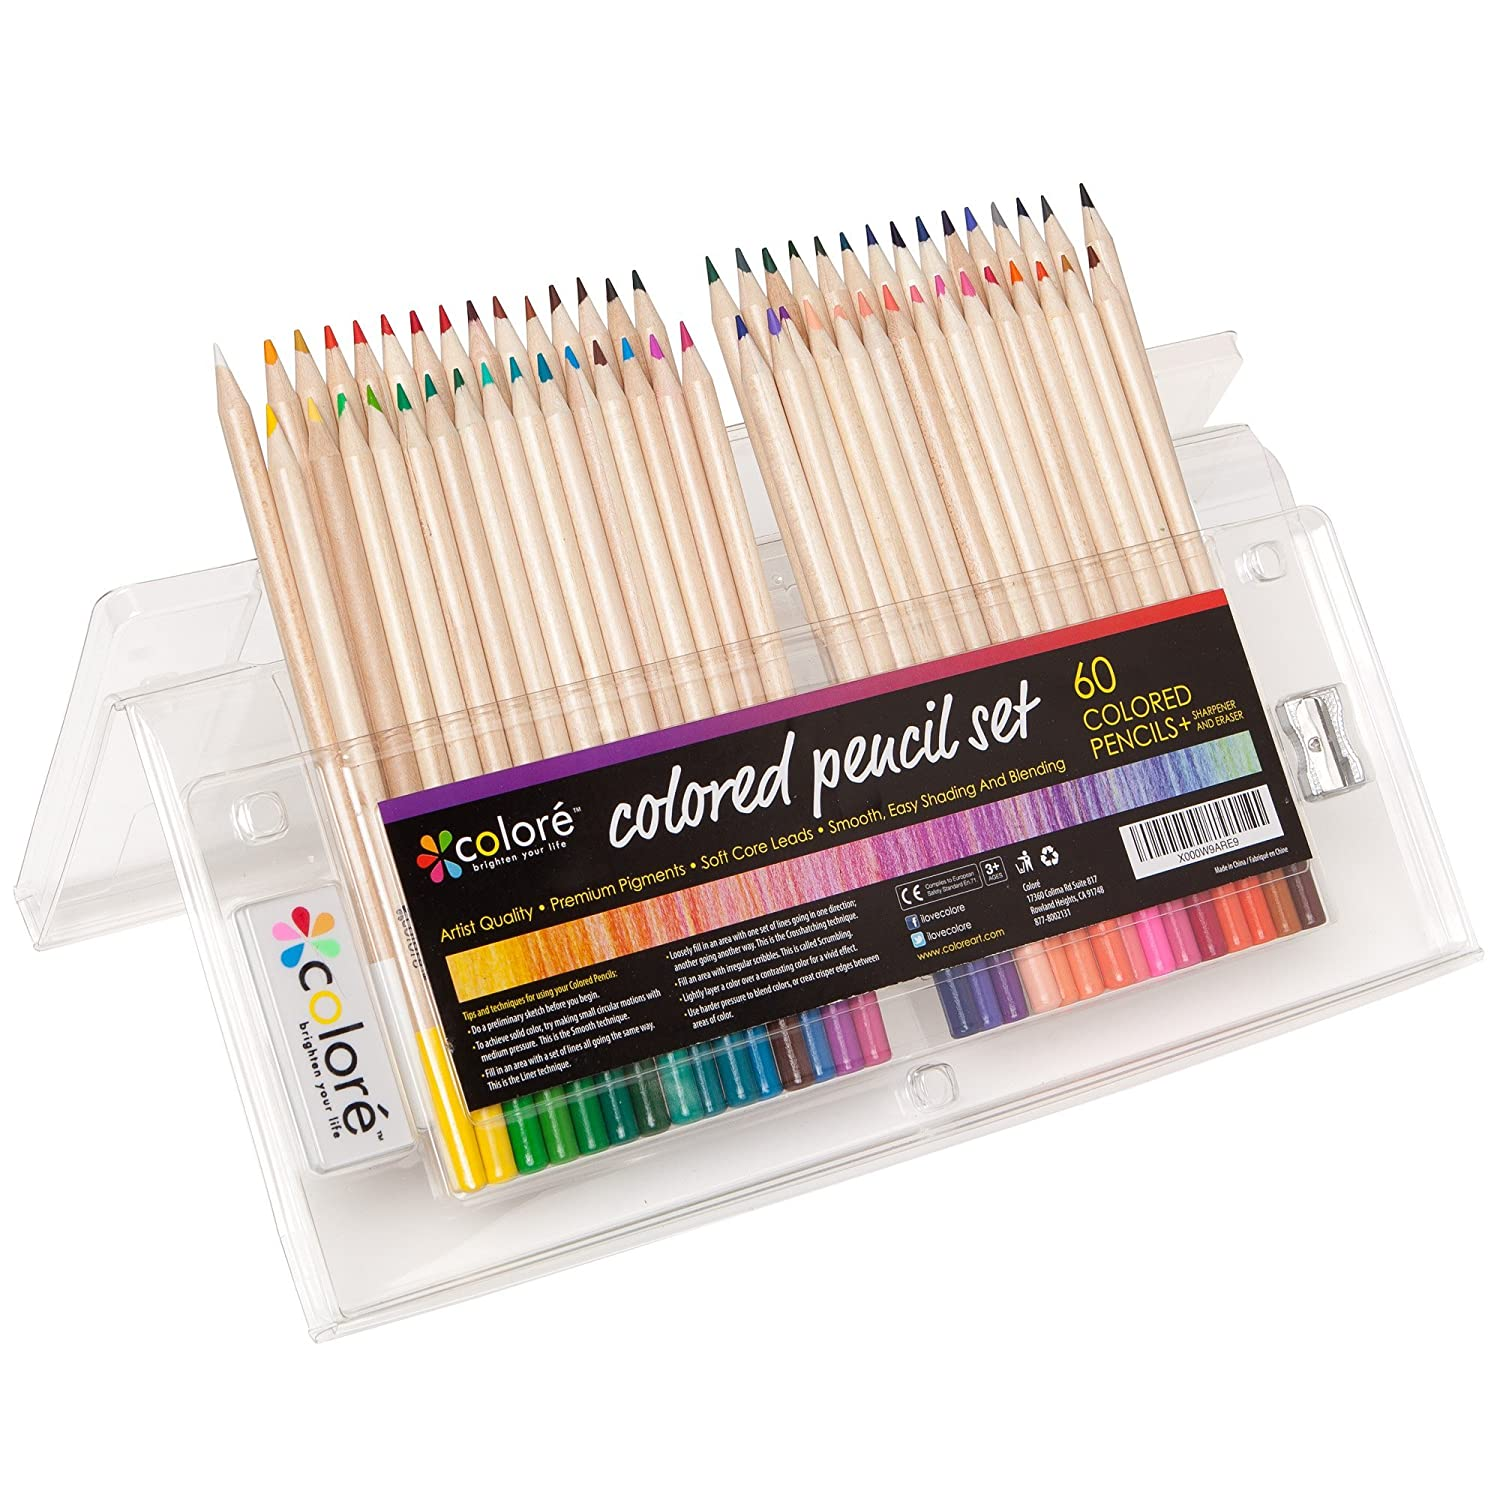 Art colored pencils - Amazon Com Colored Pencils Pre Sharpened Colored Pencil Set With Eraser And Sharpener 60 Piece